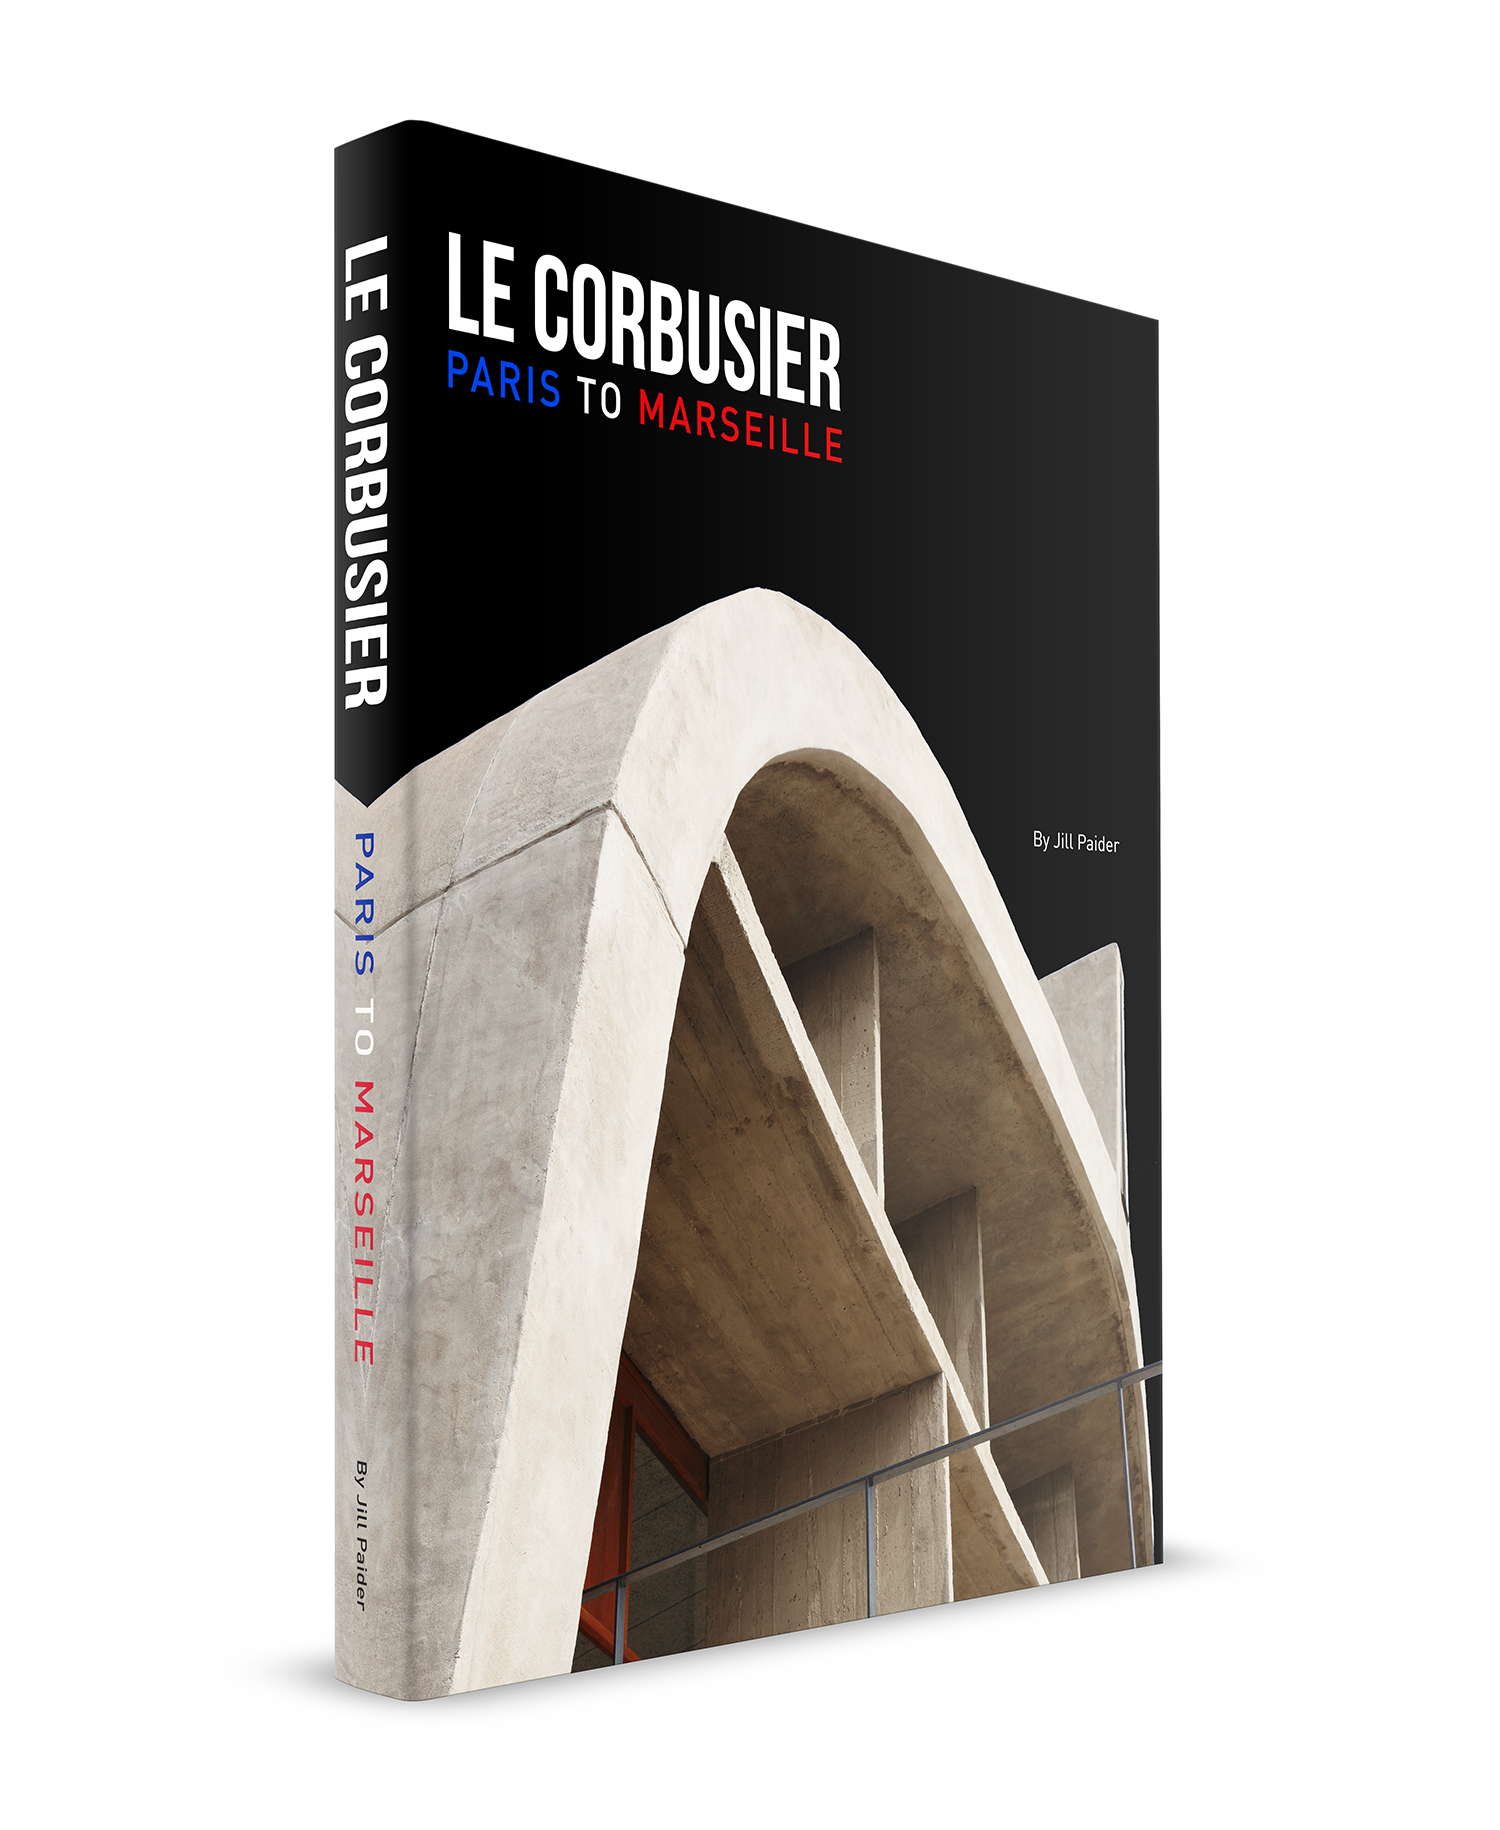 LE CORBUSIER: PARIS TO MARSEILLE - LIMITED EDITION